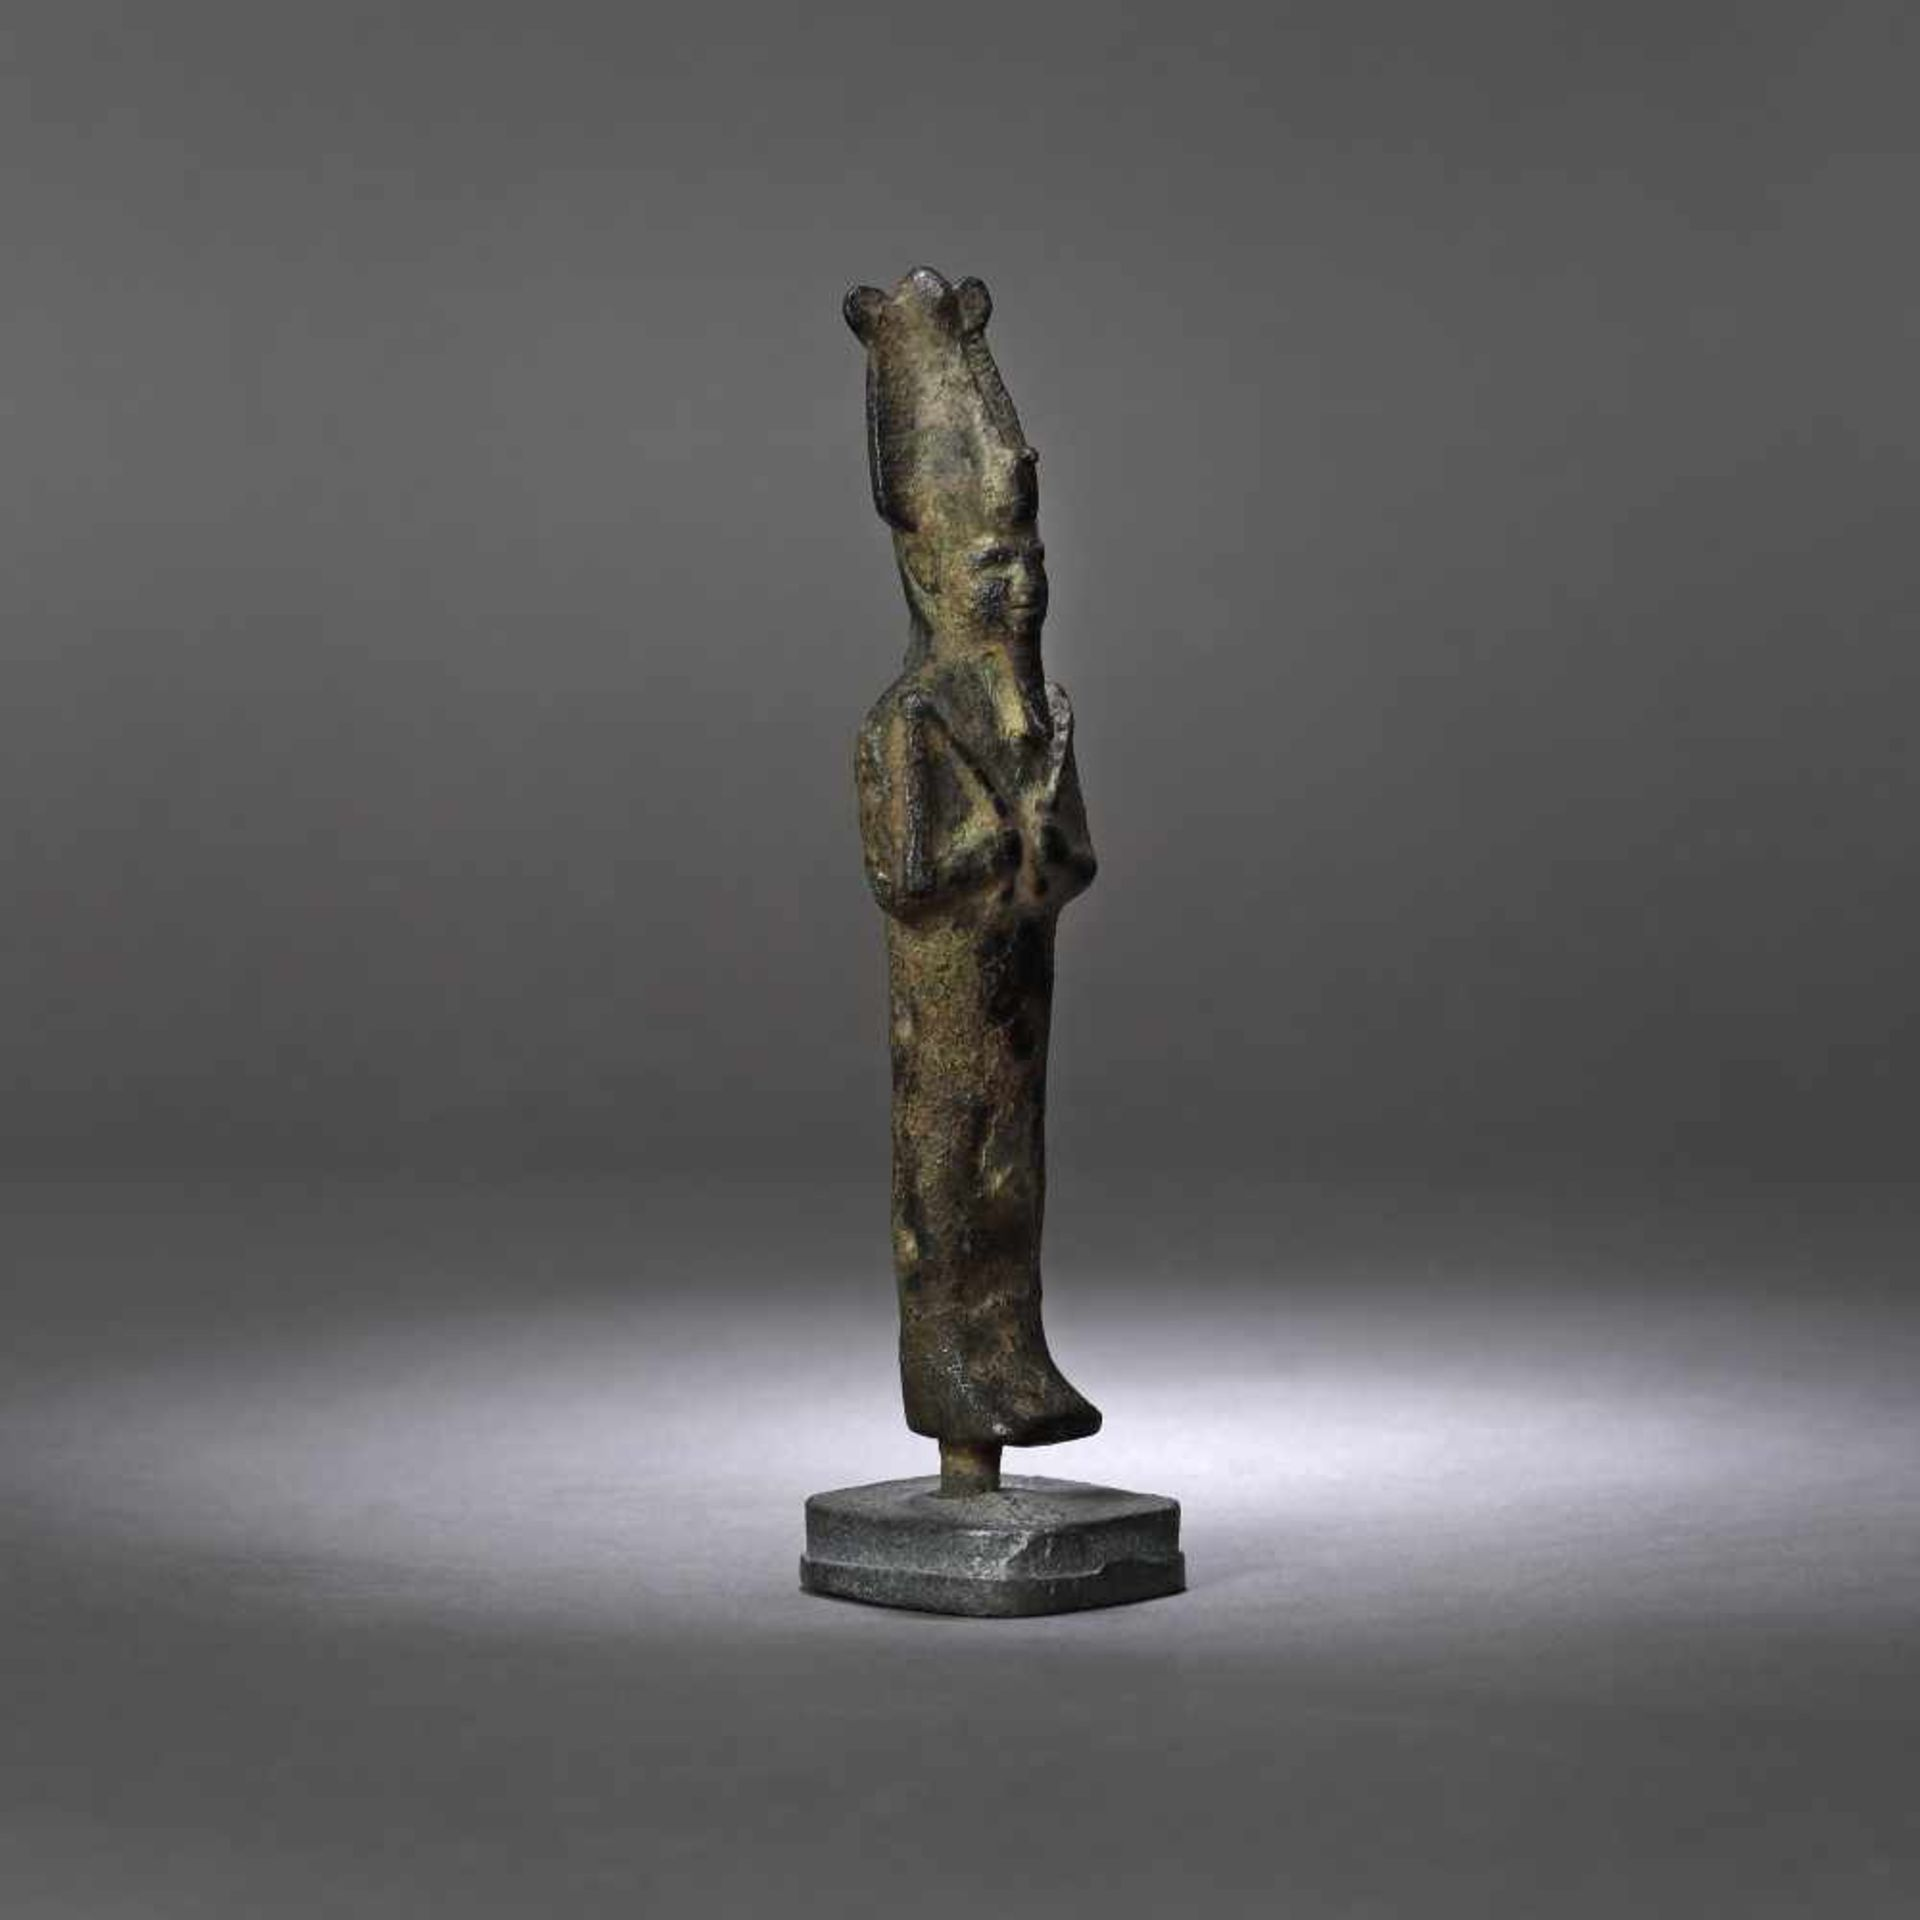 Egyptian bronze statuette, representing Osiris (god of life, afterlife and resurrection), probably t - Bild 2 aus 3